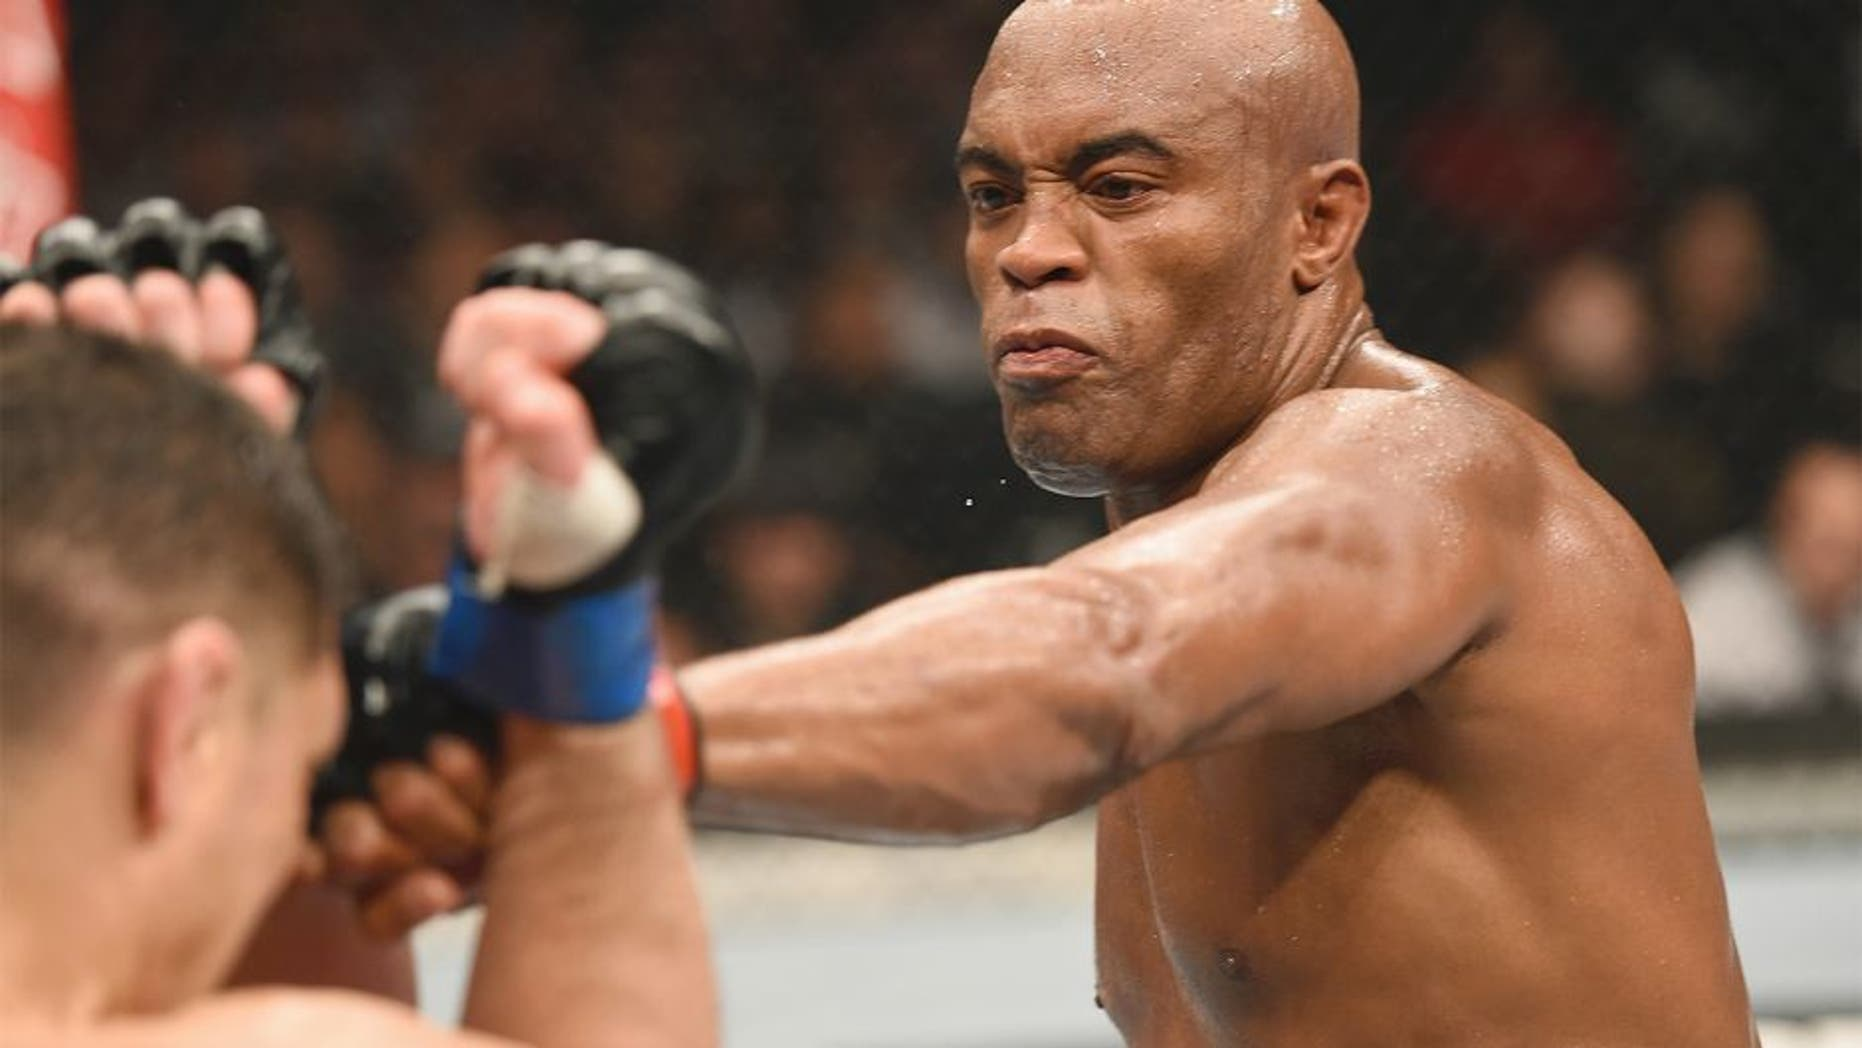 LAS VEGAS, NV - JANUARY 31: (R-L) Anderson Silva punches Nick Diaz in their middleweight bout during the UFC 183 event at the MGM Grand Garden Arena on January 31, 2015 in Las Vegas, Nevada. (Photo by Josh Hedges/Zuffa LLC/Zuffa LLC via Getty Images)